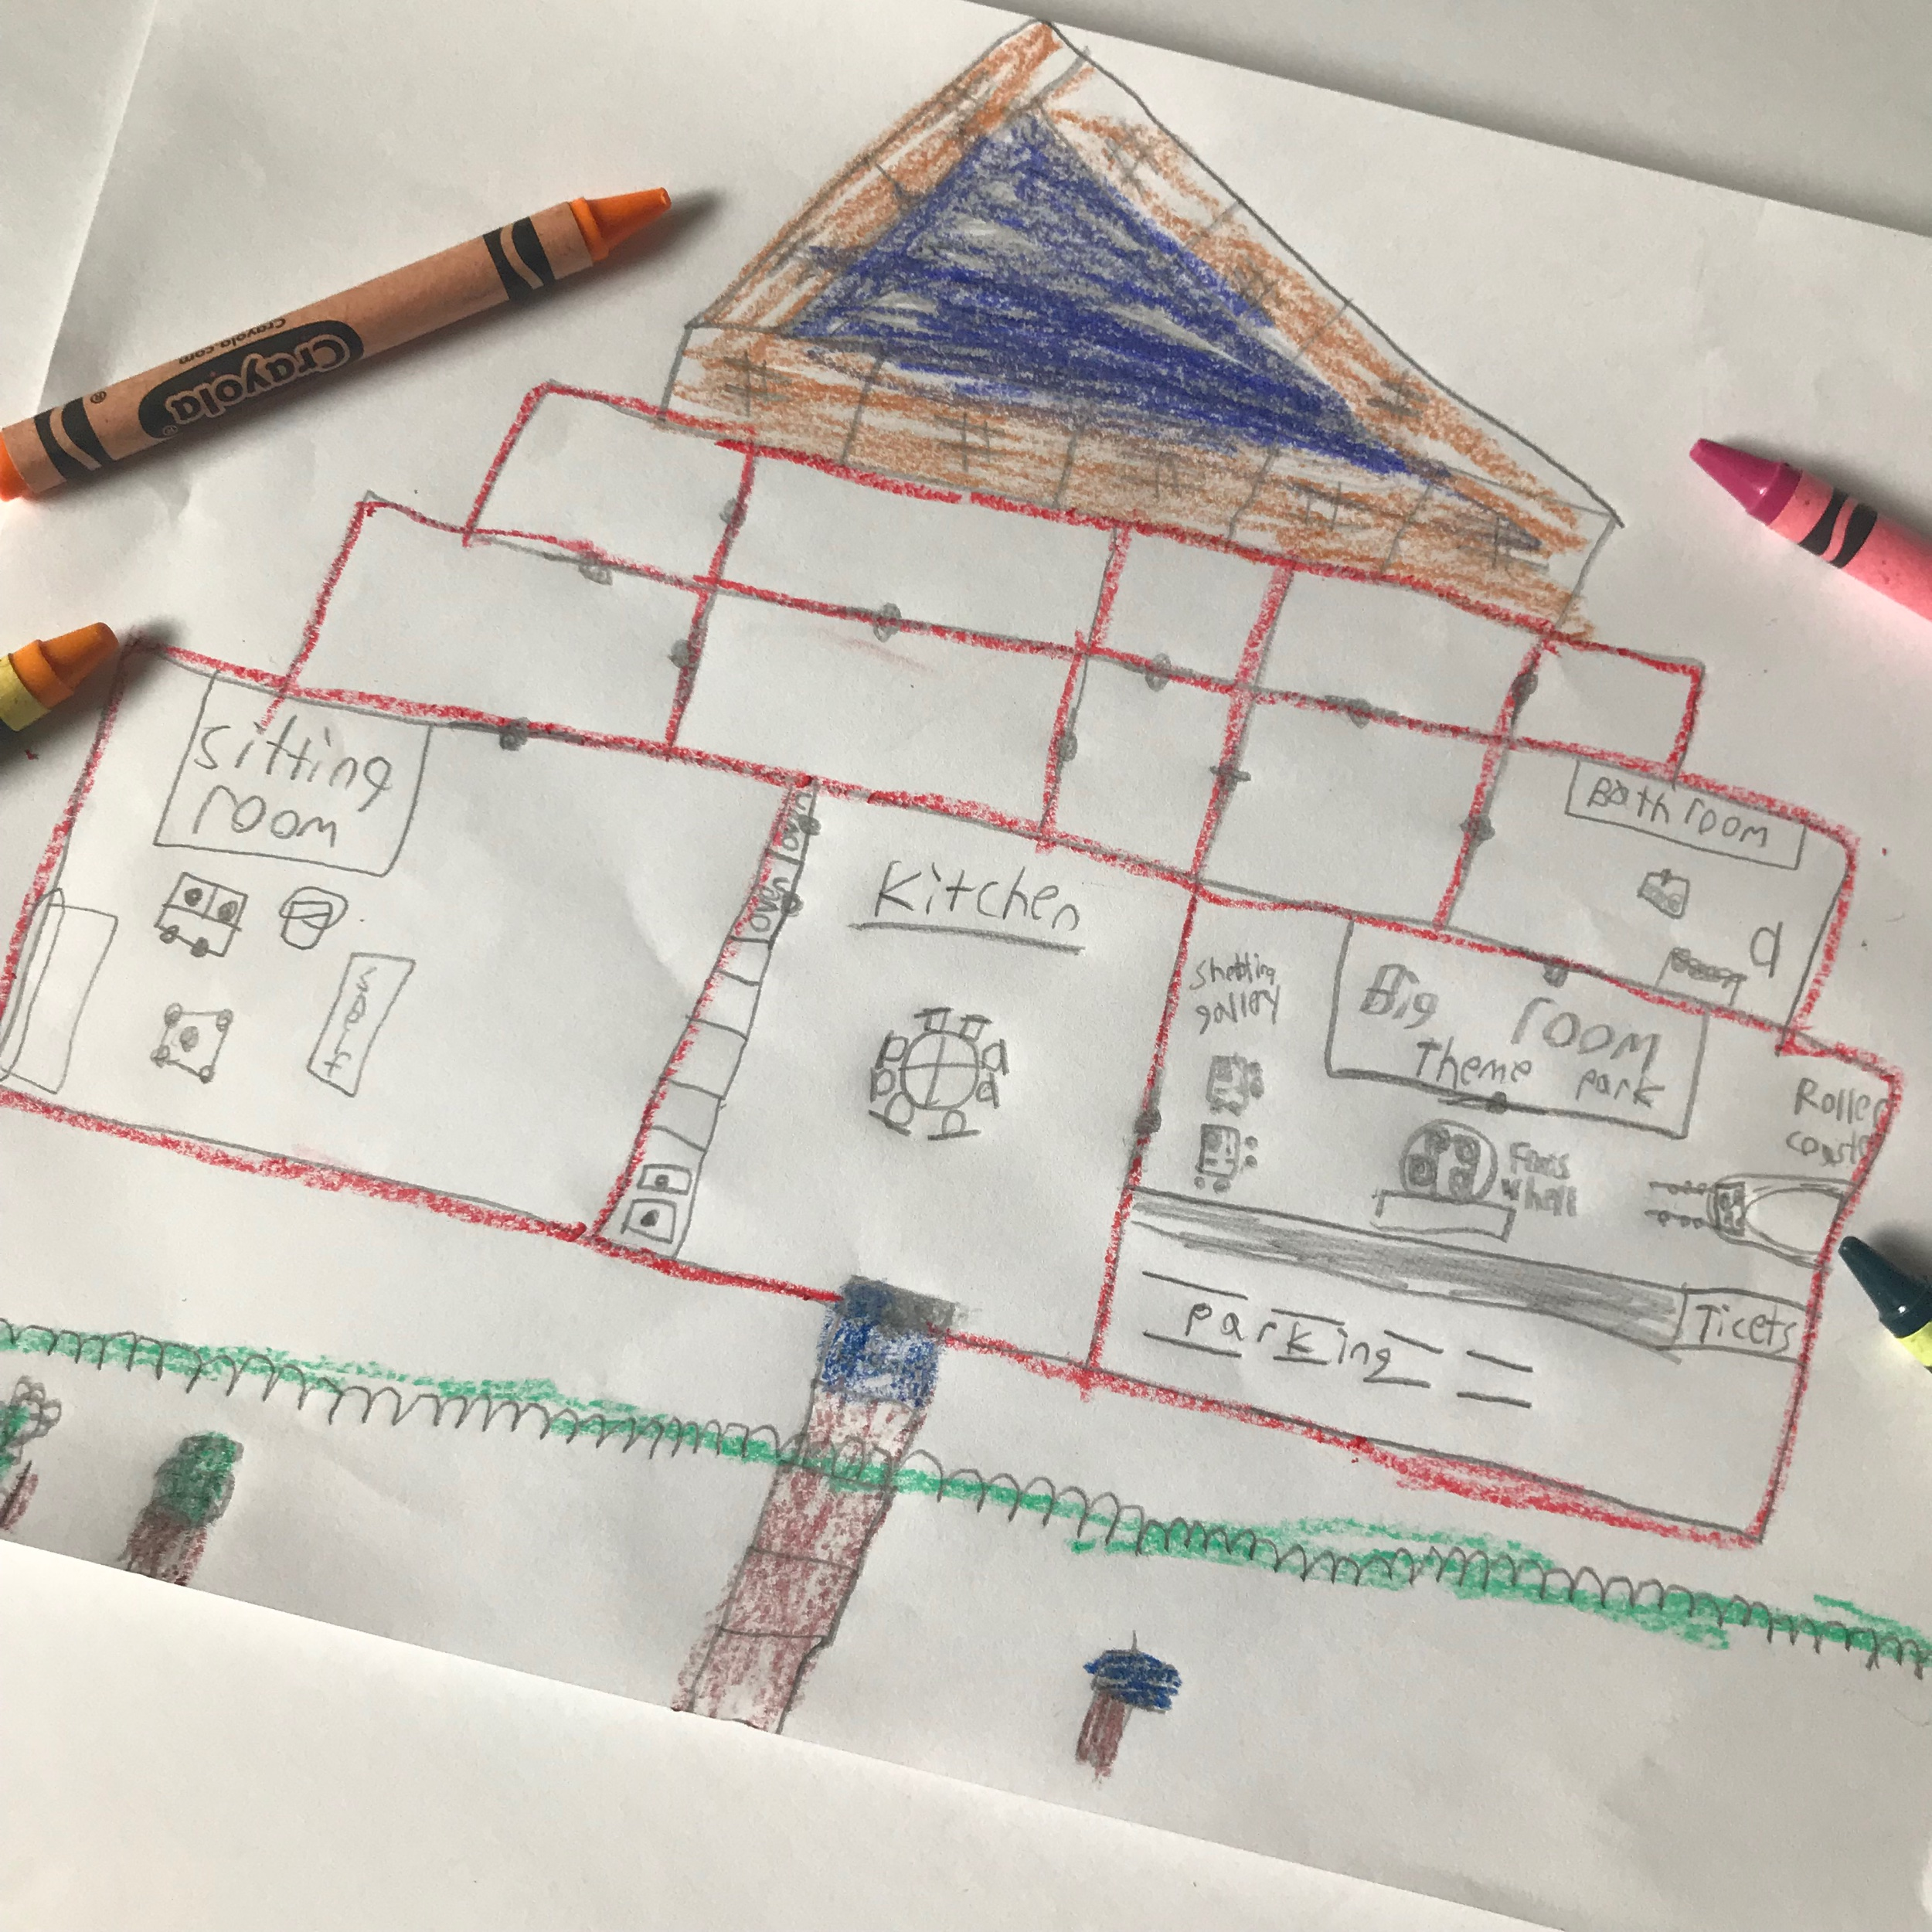 William's House Design: The bottom right hand section is the 'Diary of a Wimpy Kid 'inspired theme park he decided to include in his house.